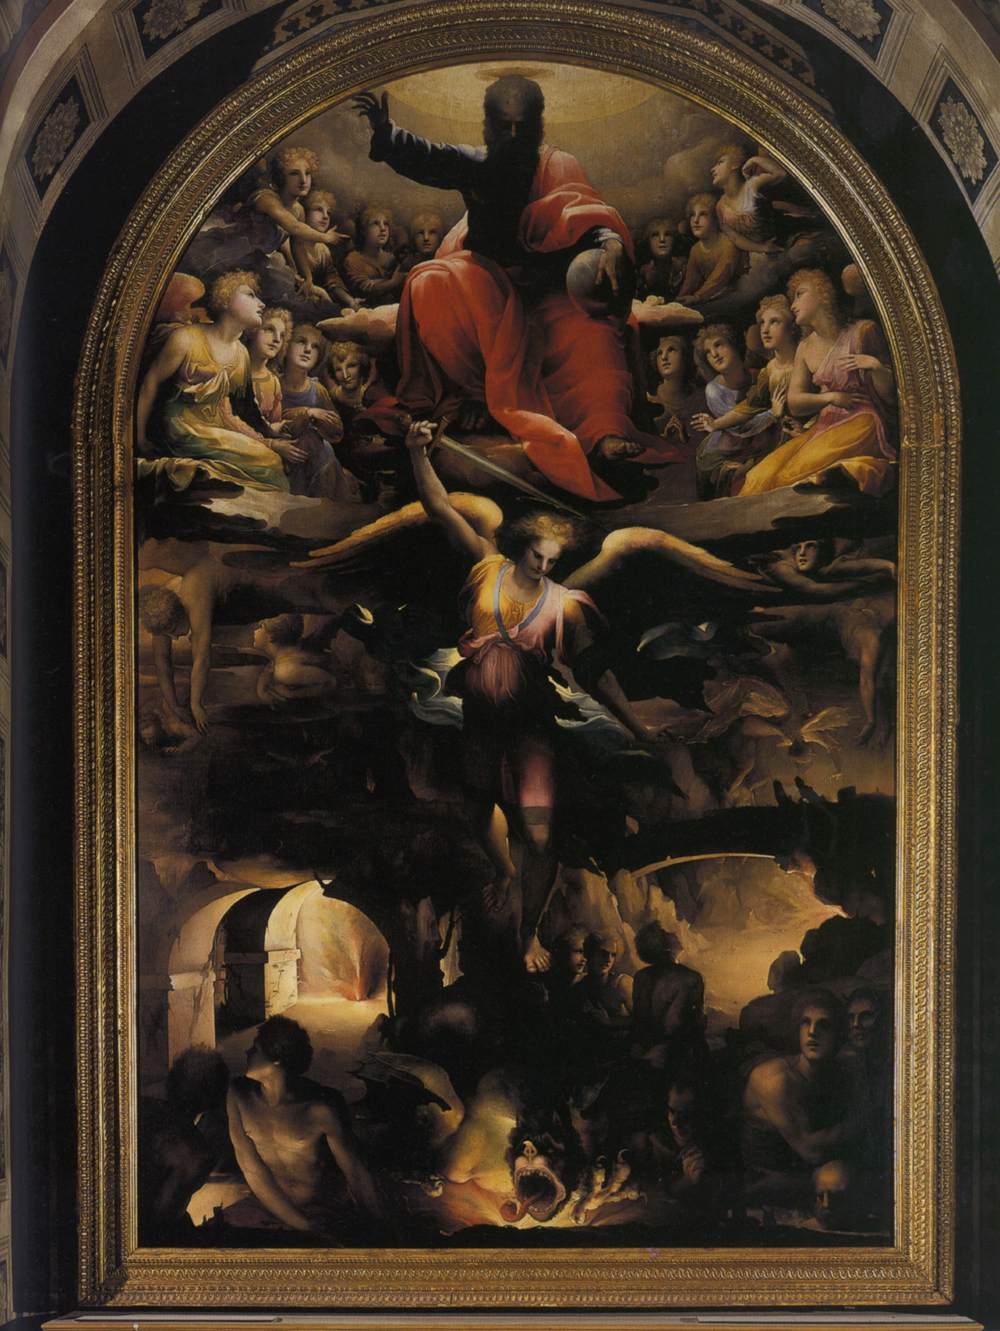 Domenico Beccafumi. The Archangel Michael casting out the rebellious angels